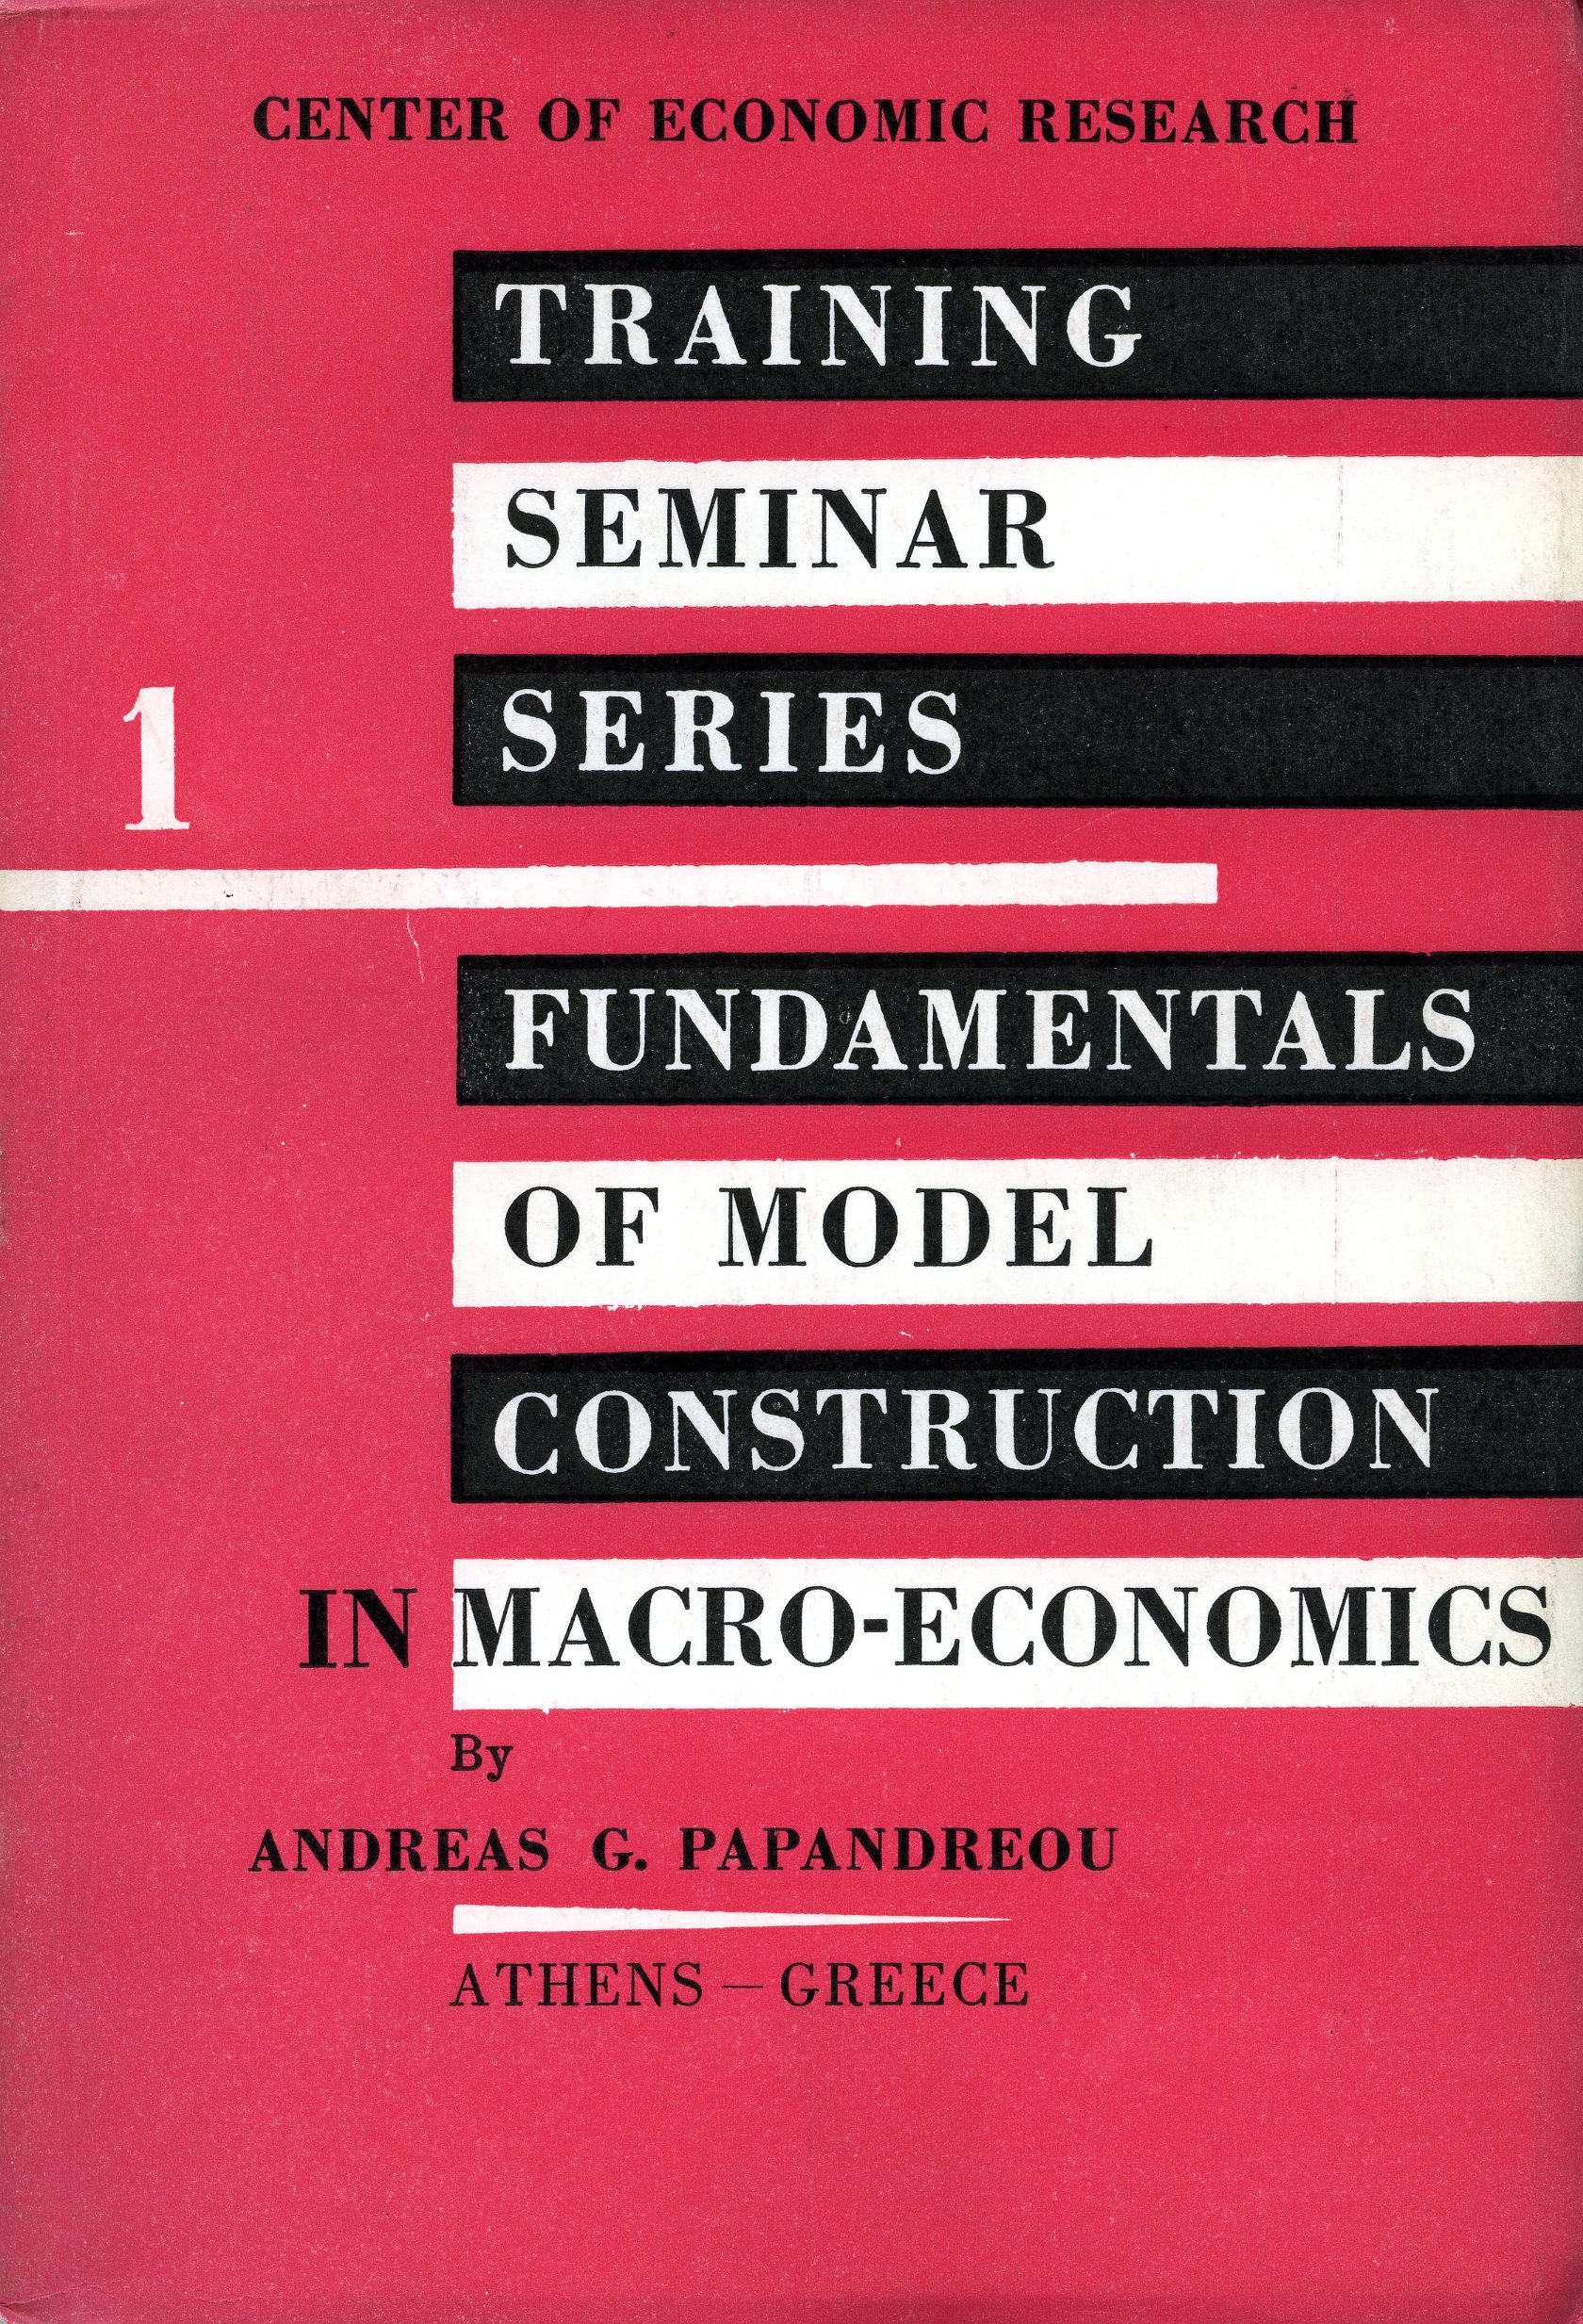 Fundamentals of model construction in macro-economics exof